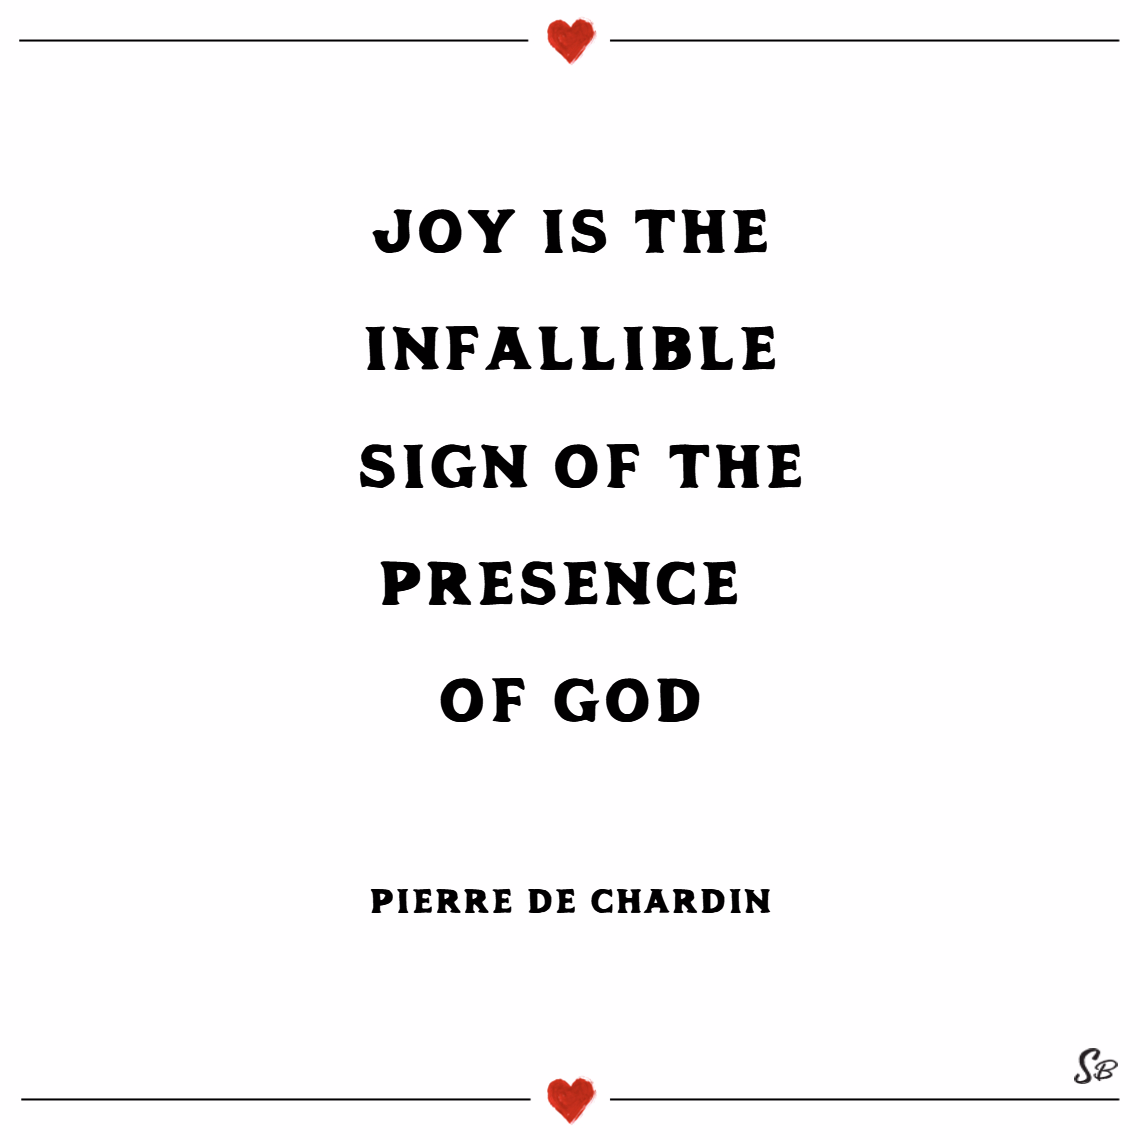 Joy is the infallible sign of the presence of god. – pierre teilhard de chardin